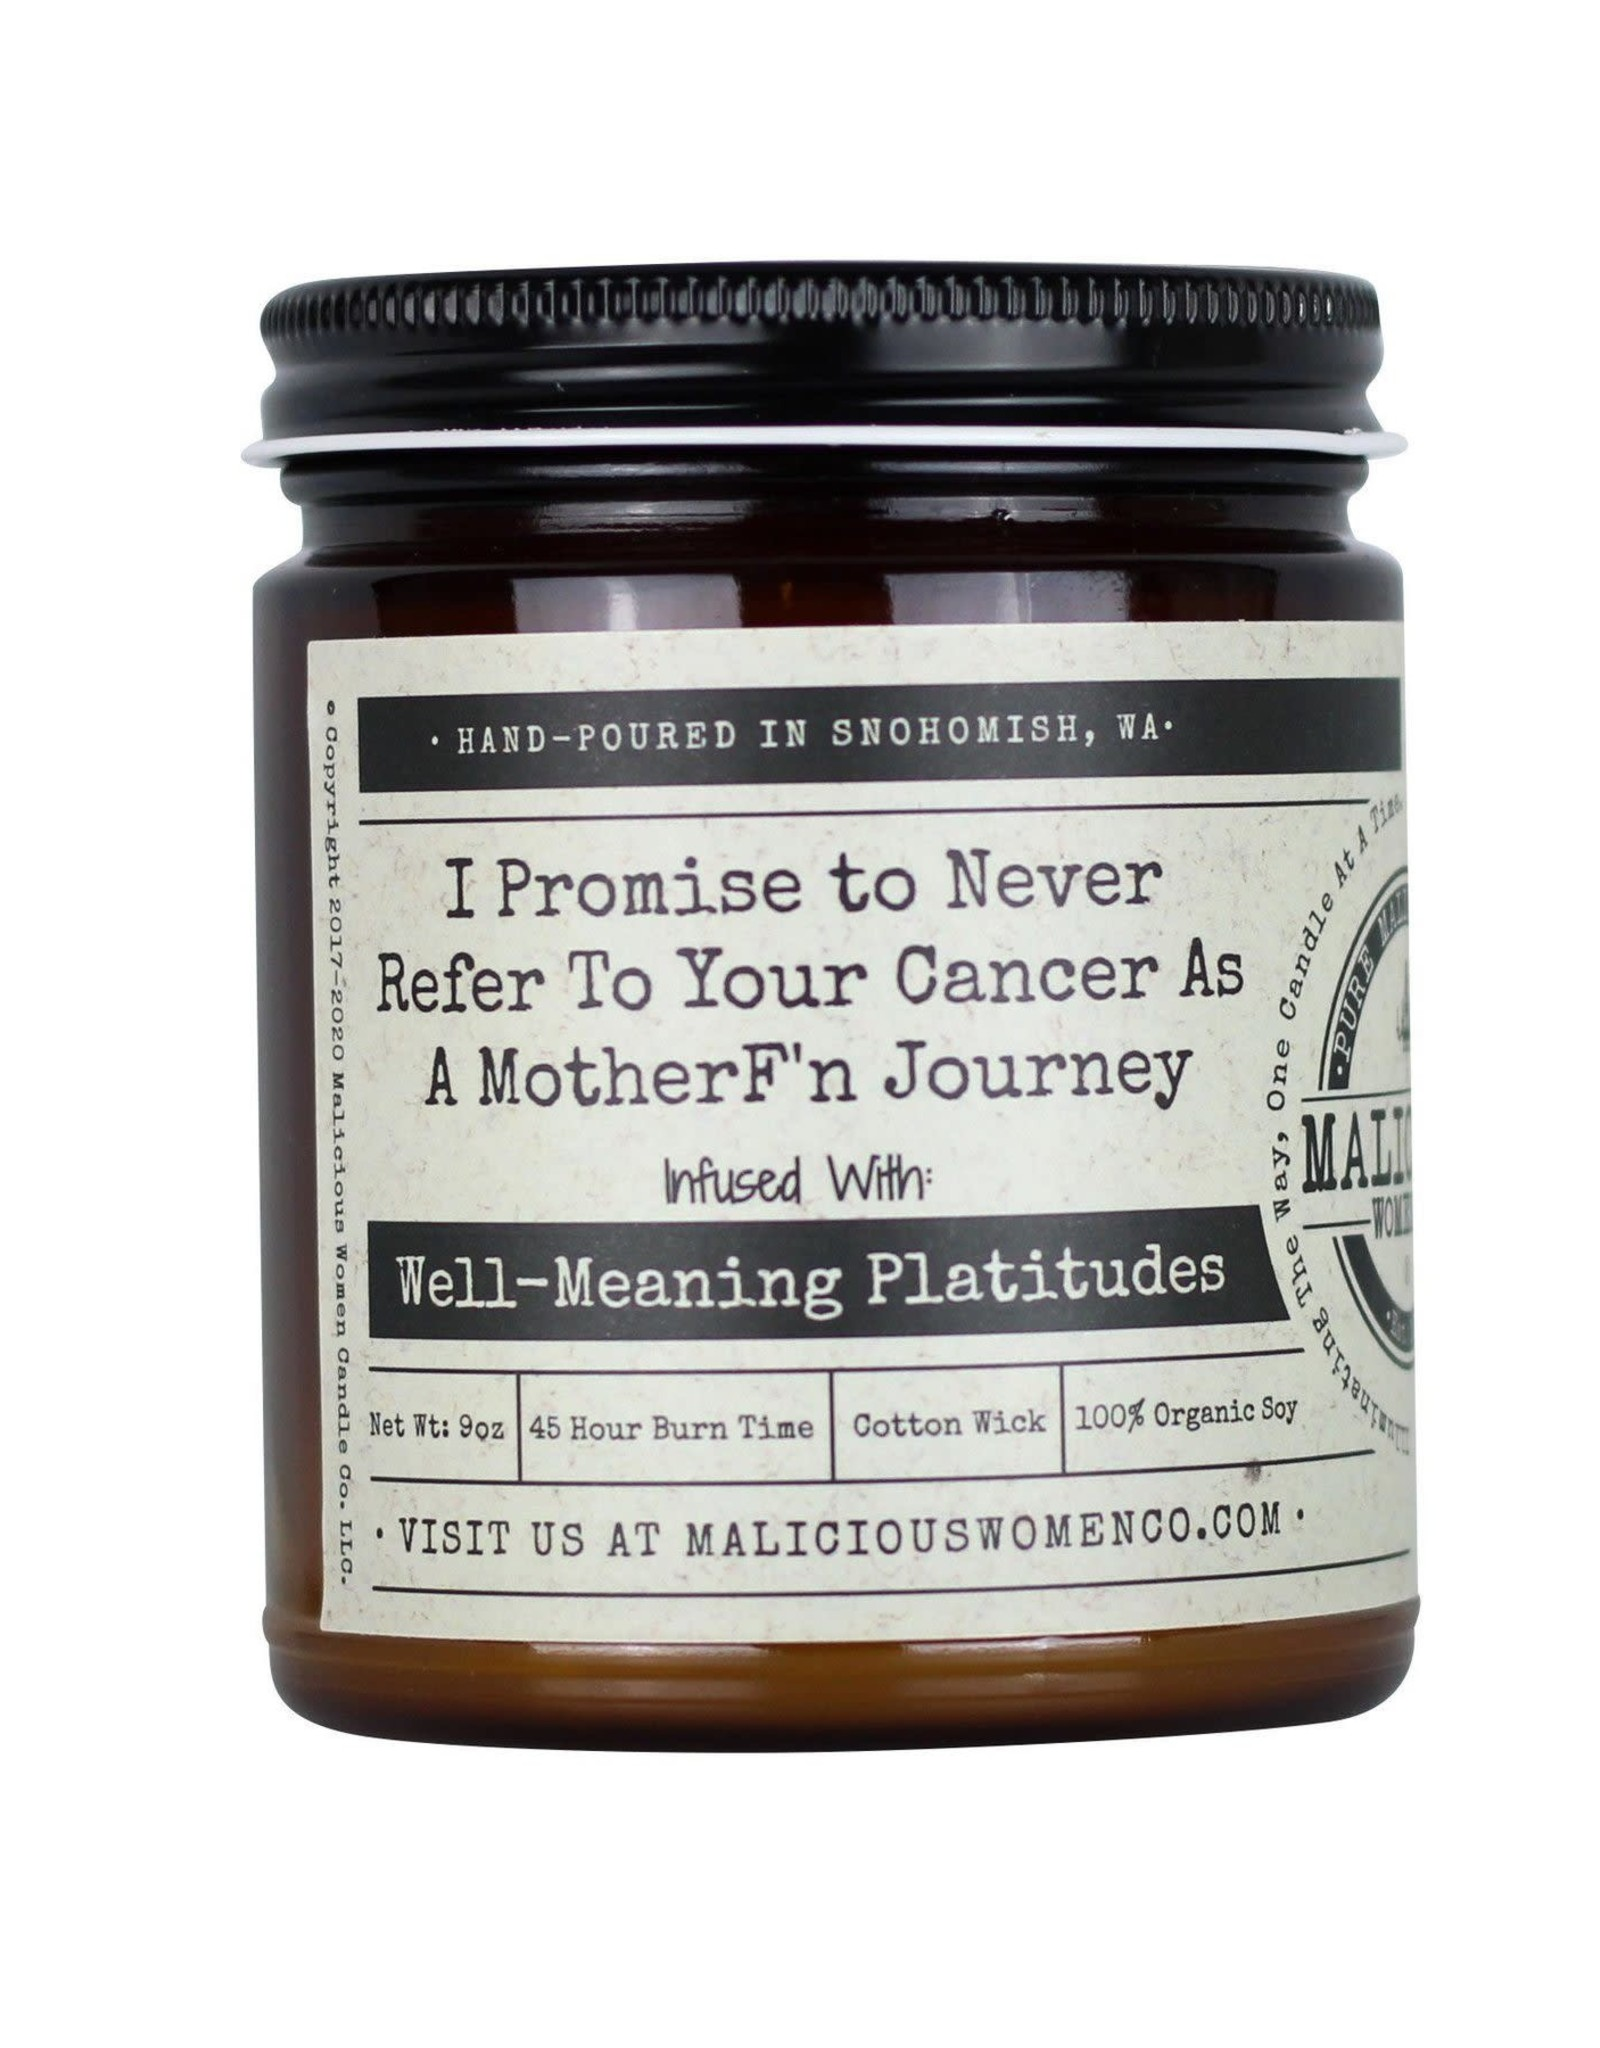 Malicious Women Candle Co. I Promise to Never Refer To Your Cancer As A MFng Journey Candle